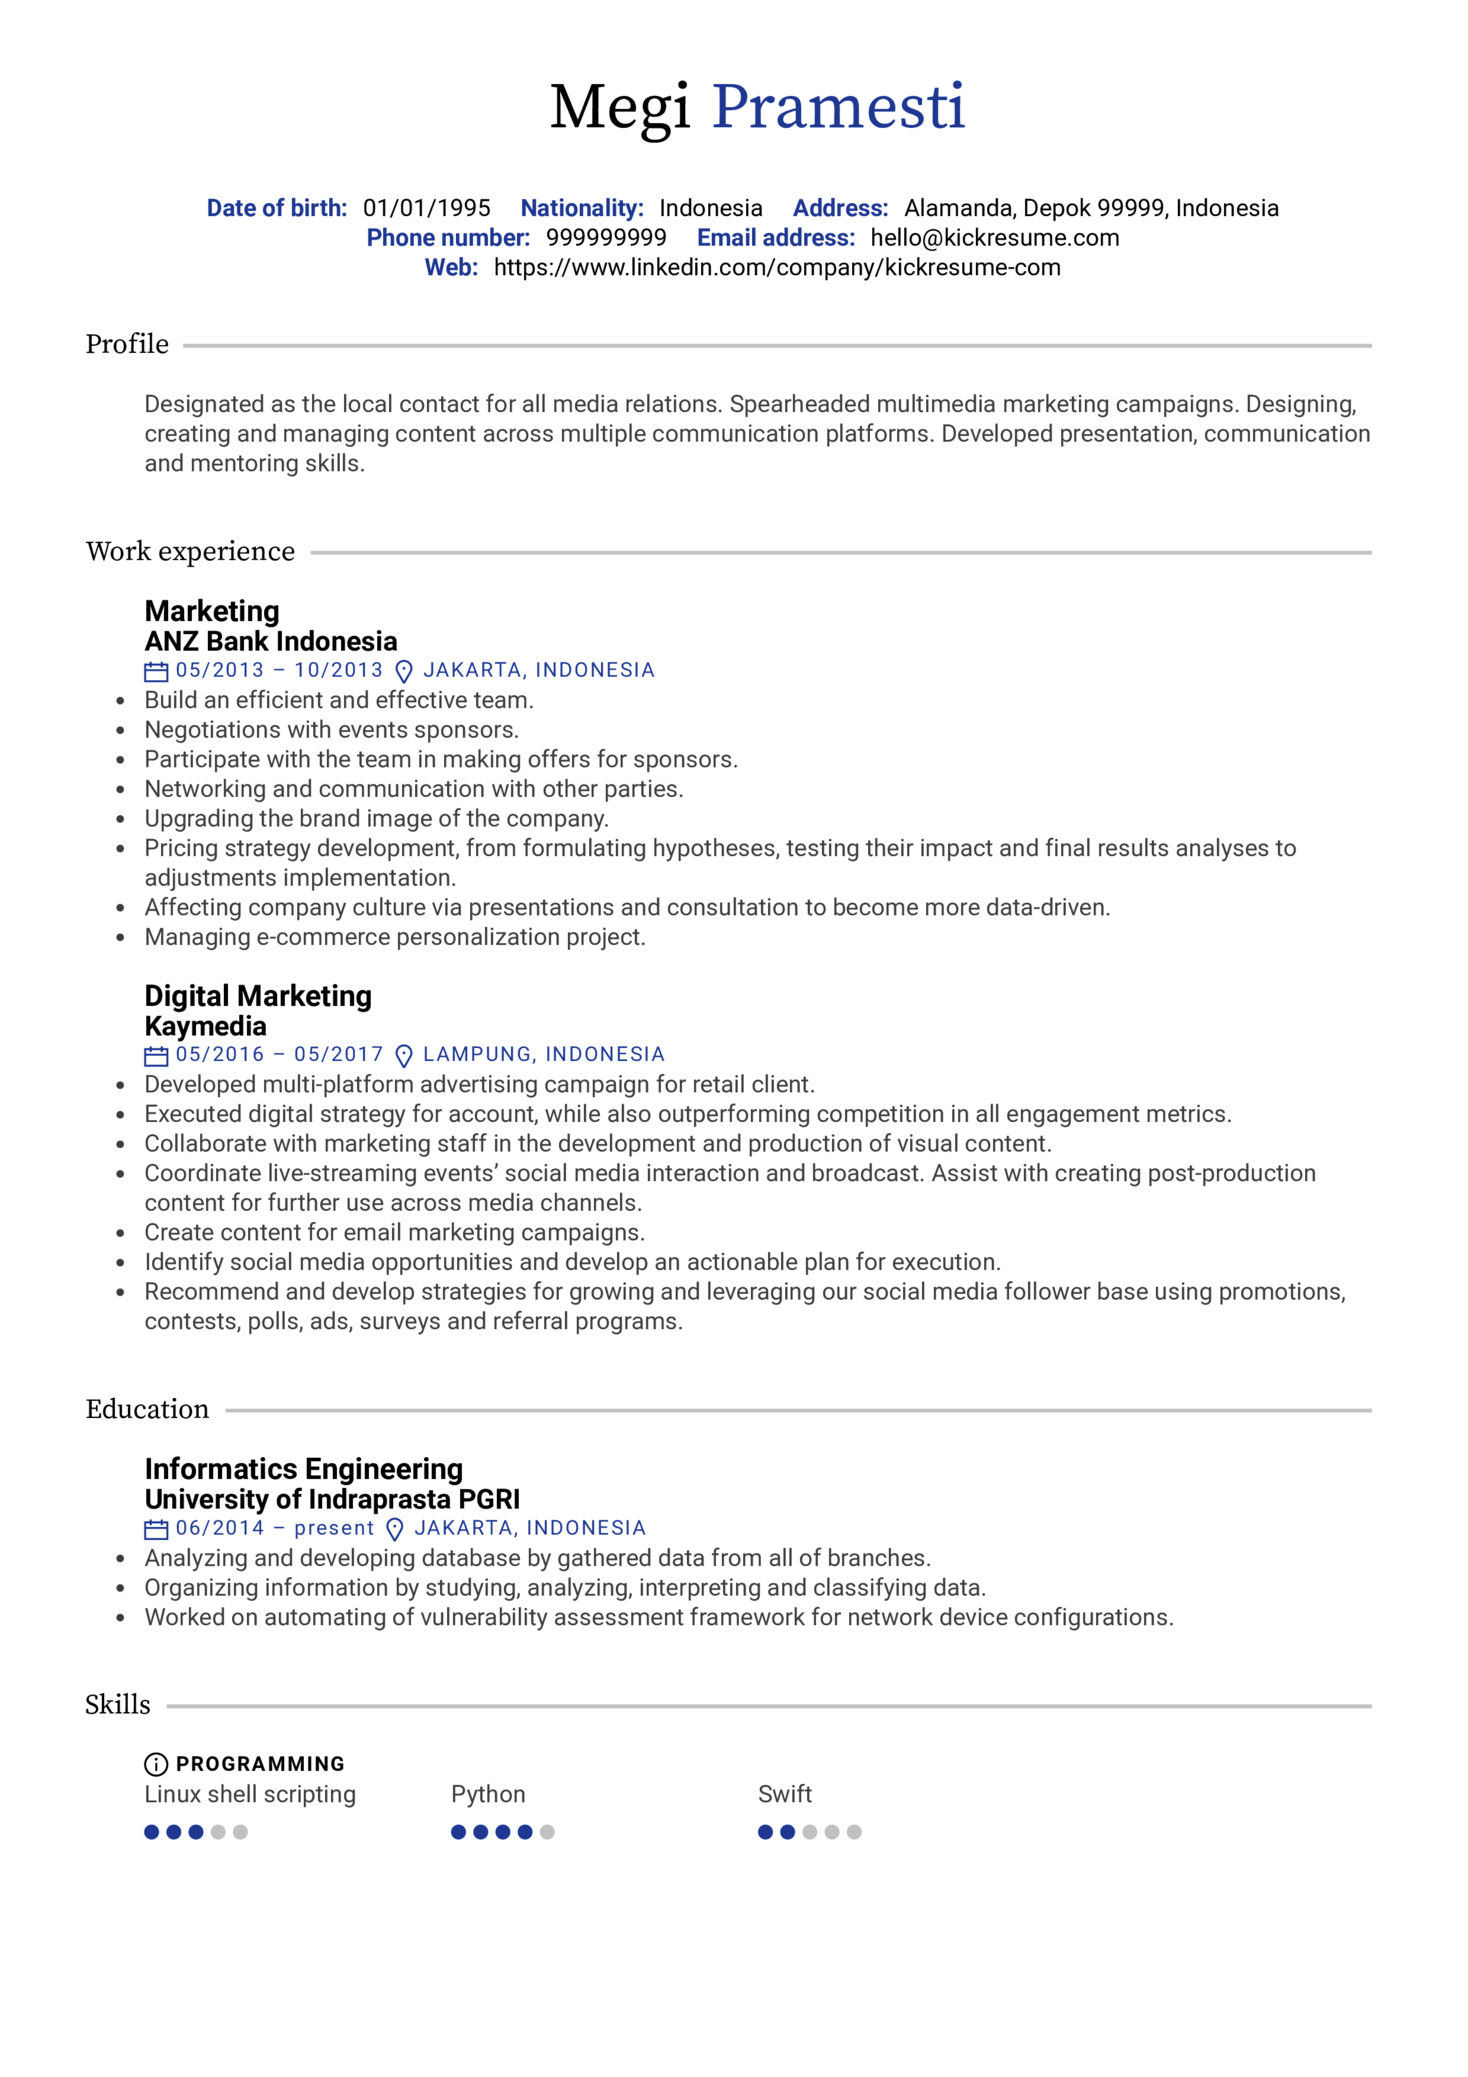 Digital Marketing Consultant Resume Samples Visualcv